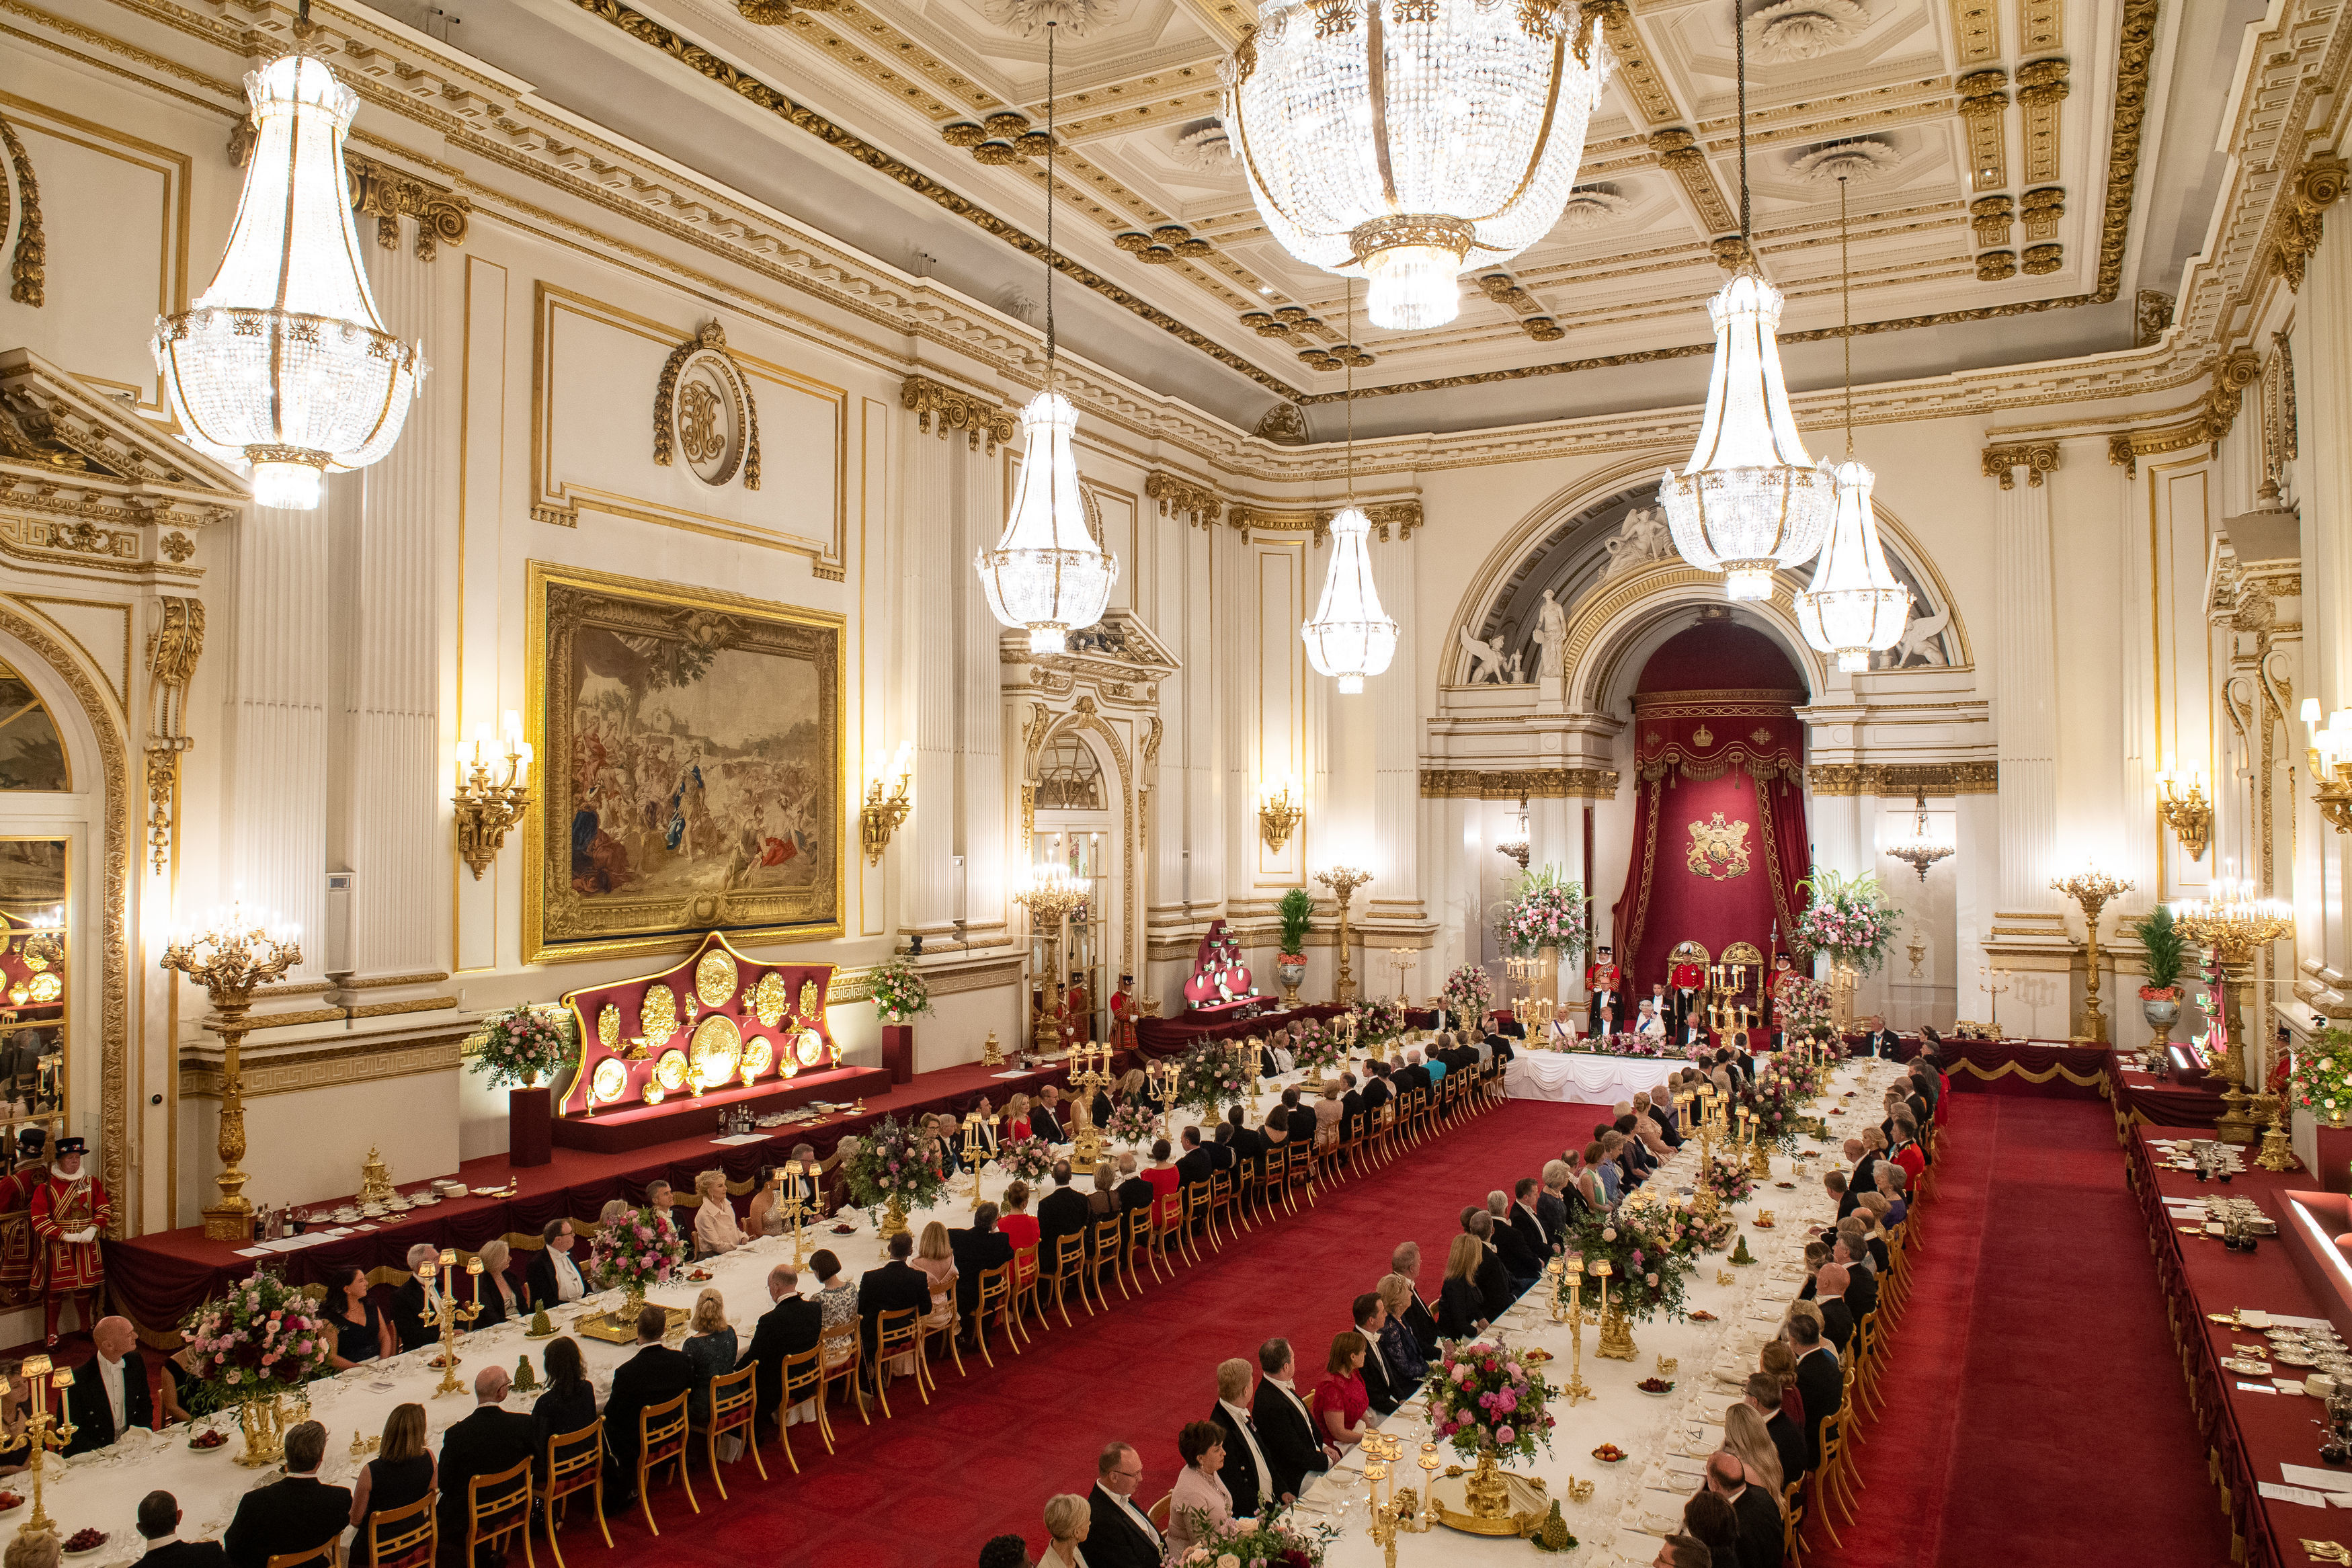 Royal Family Shares Rare Look at What Goes into Hosting a State Banquet at Buckingham Palace